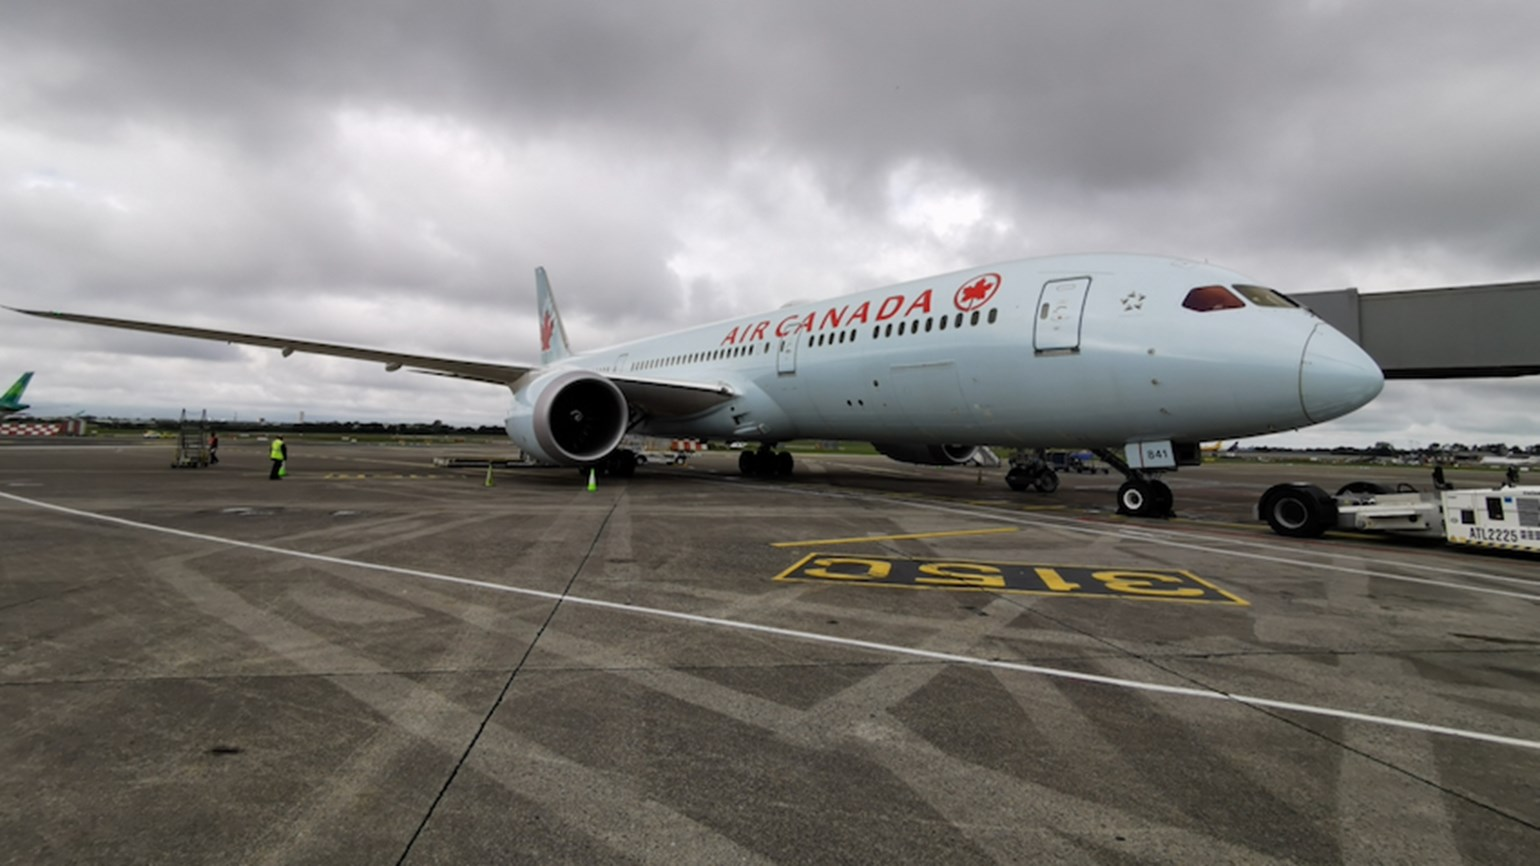 Air Canada in Dublin